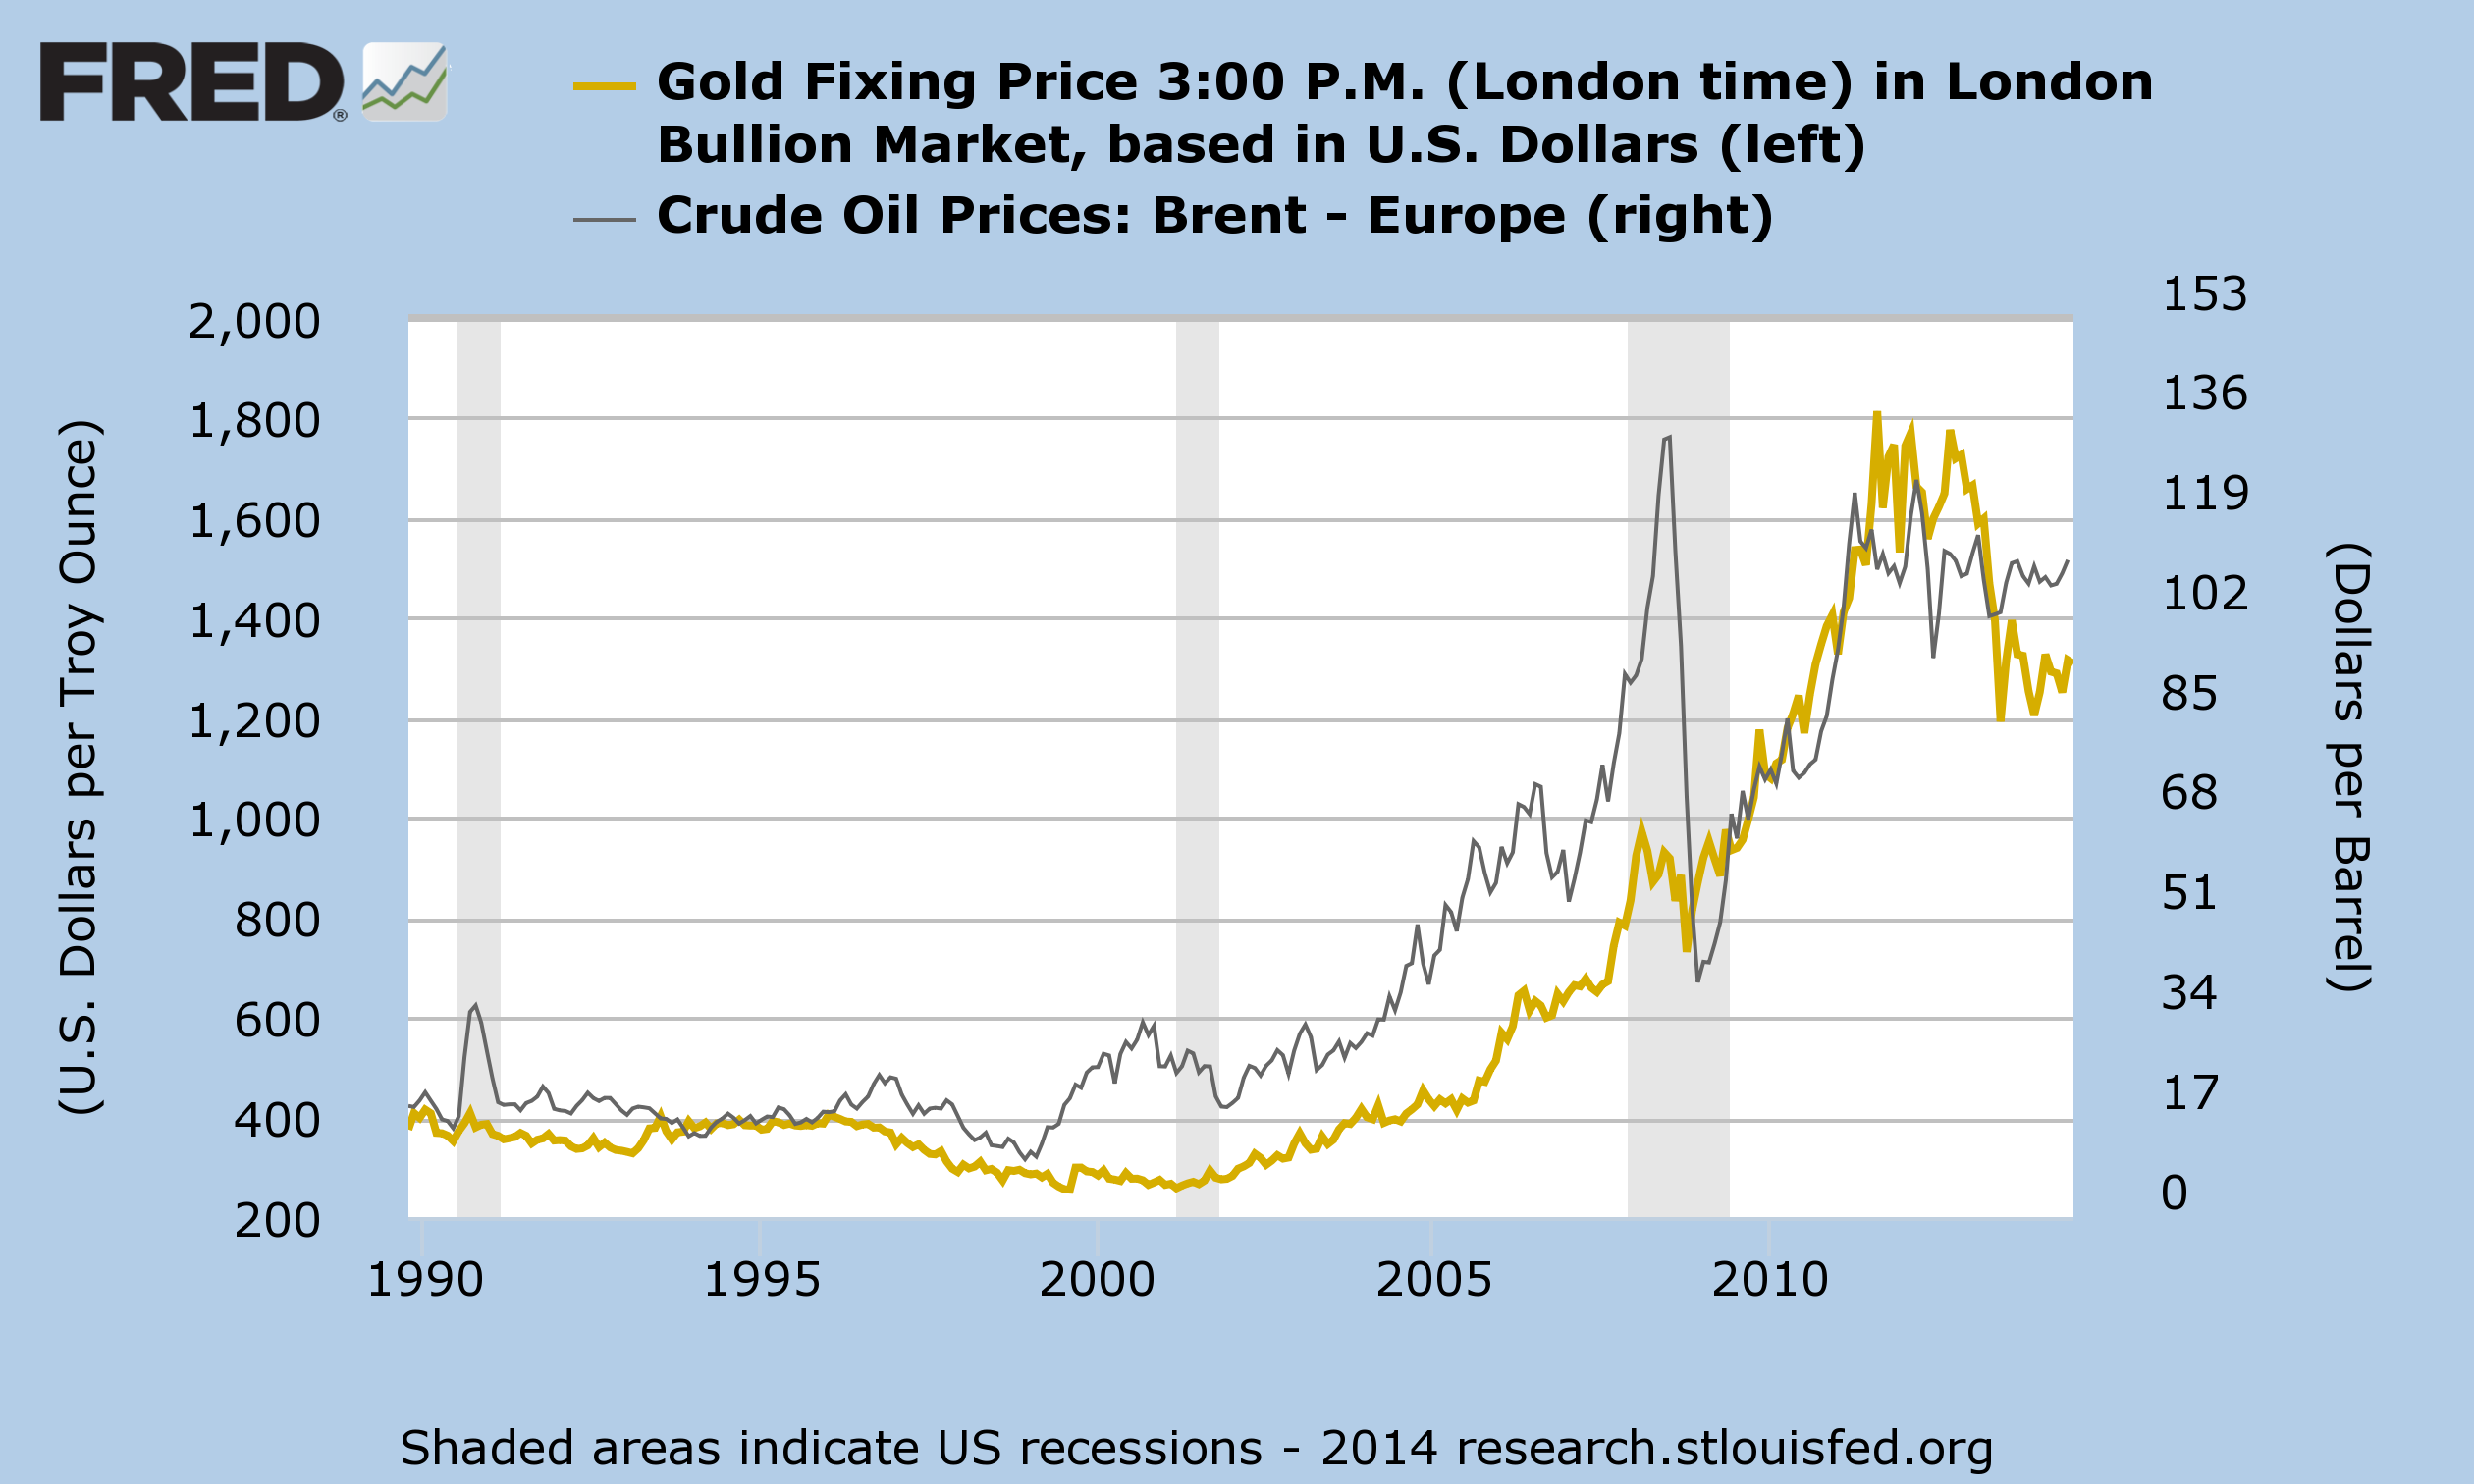 Gold and Crude